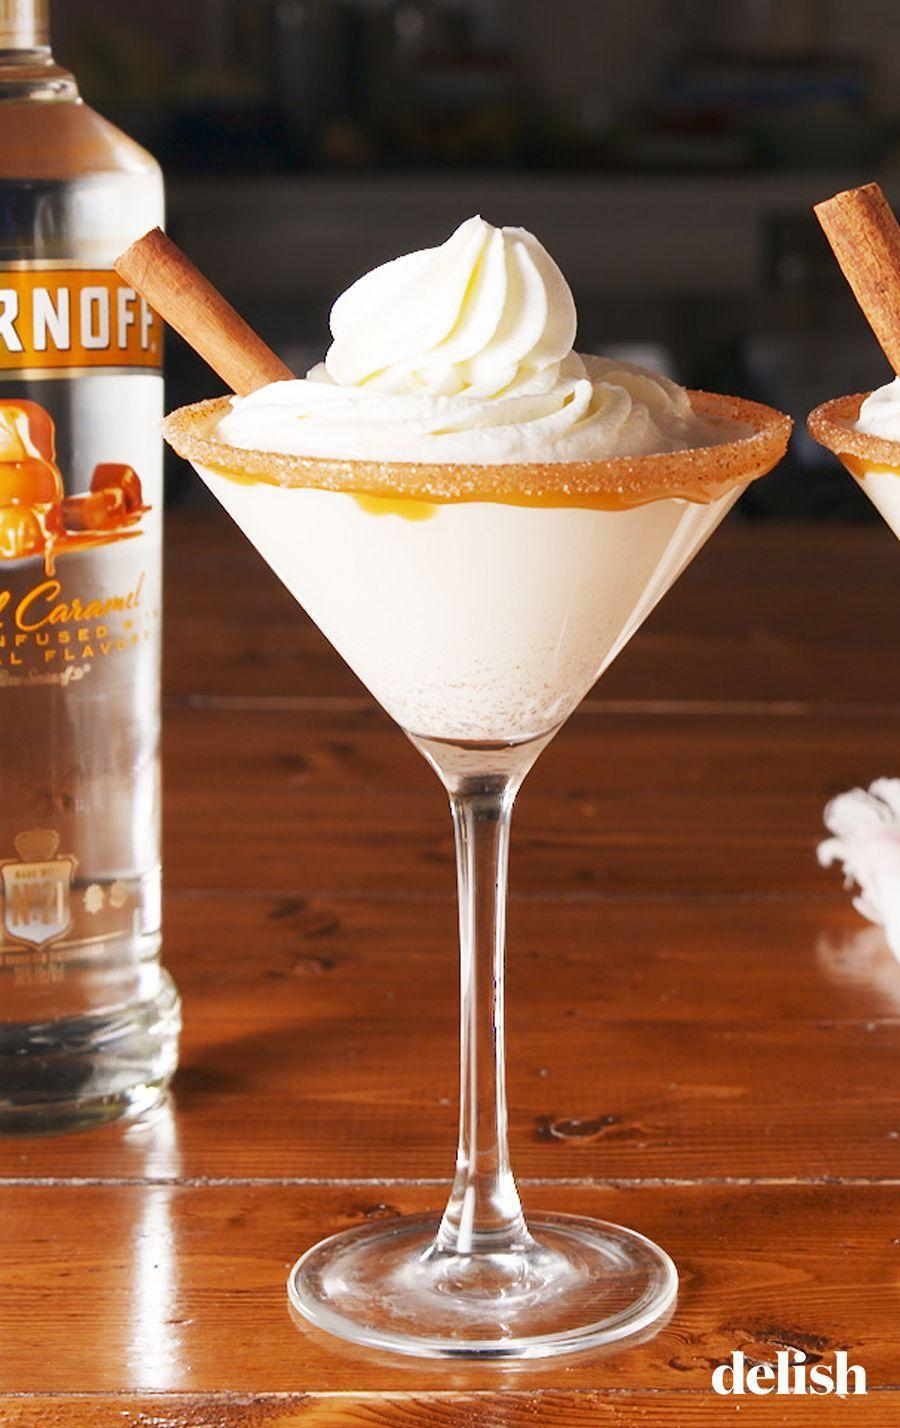 """<p>All the flavor of a snickerdoodle, without the hassle of baking.</p><p>Get the recipe from <a href=""""https://www.delish.com/cooking/recipe-ideas/a26243112/caramel-snickerdoodle-martini-recipe/"""" rel=""""nofollow noopener"""" target=""""_blank"""" data-ylk=""""slk:Delish"""" class=""""link rapid-noclick-resp"""">Delish</a>.</p>"""